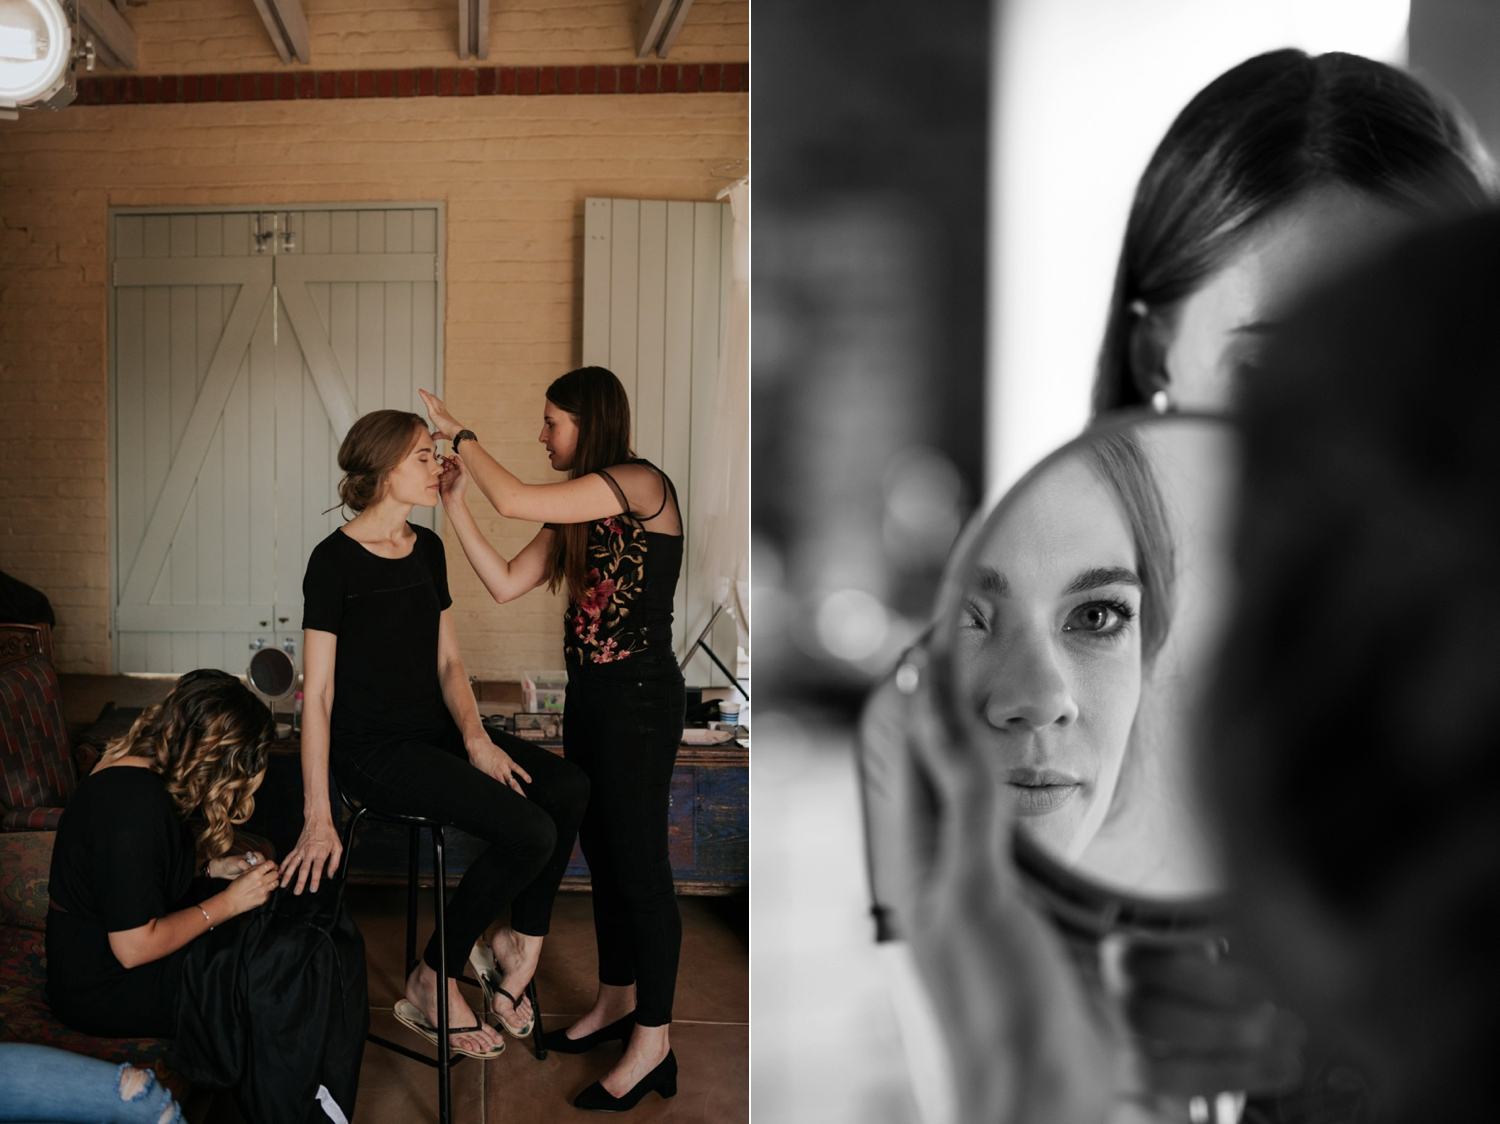 Bride Gets Ready In Unique Old Photographic Studio - Great Idea For A Place To Get Ready Before Your Wedding